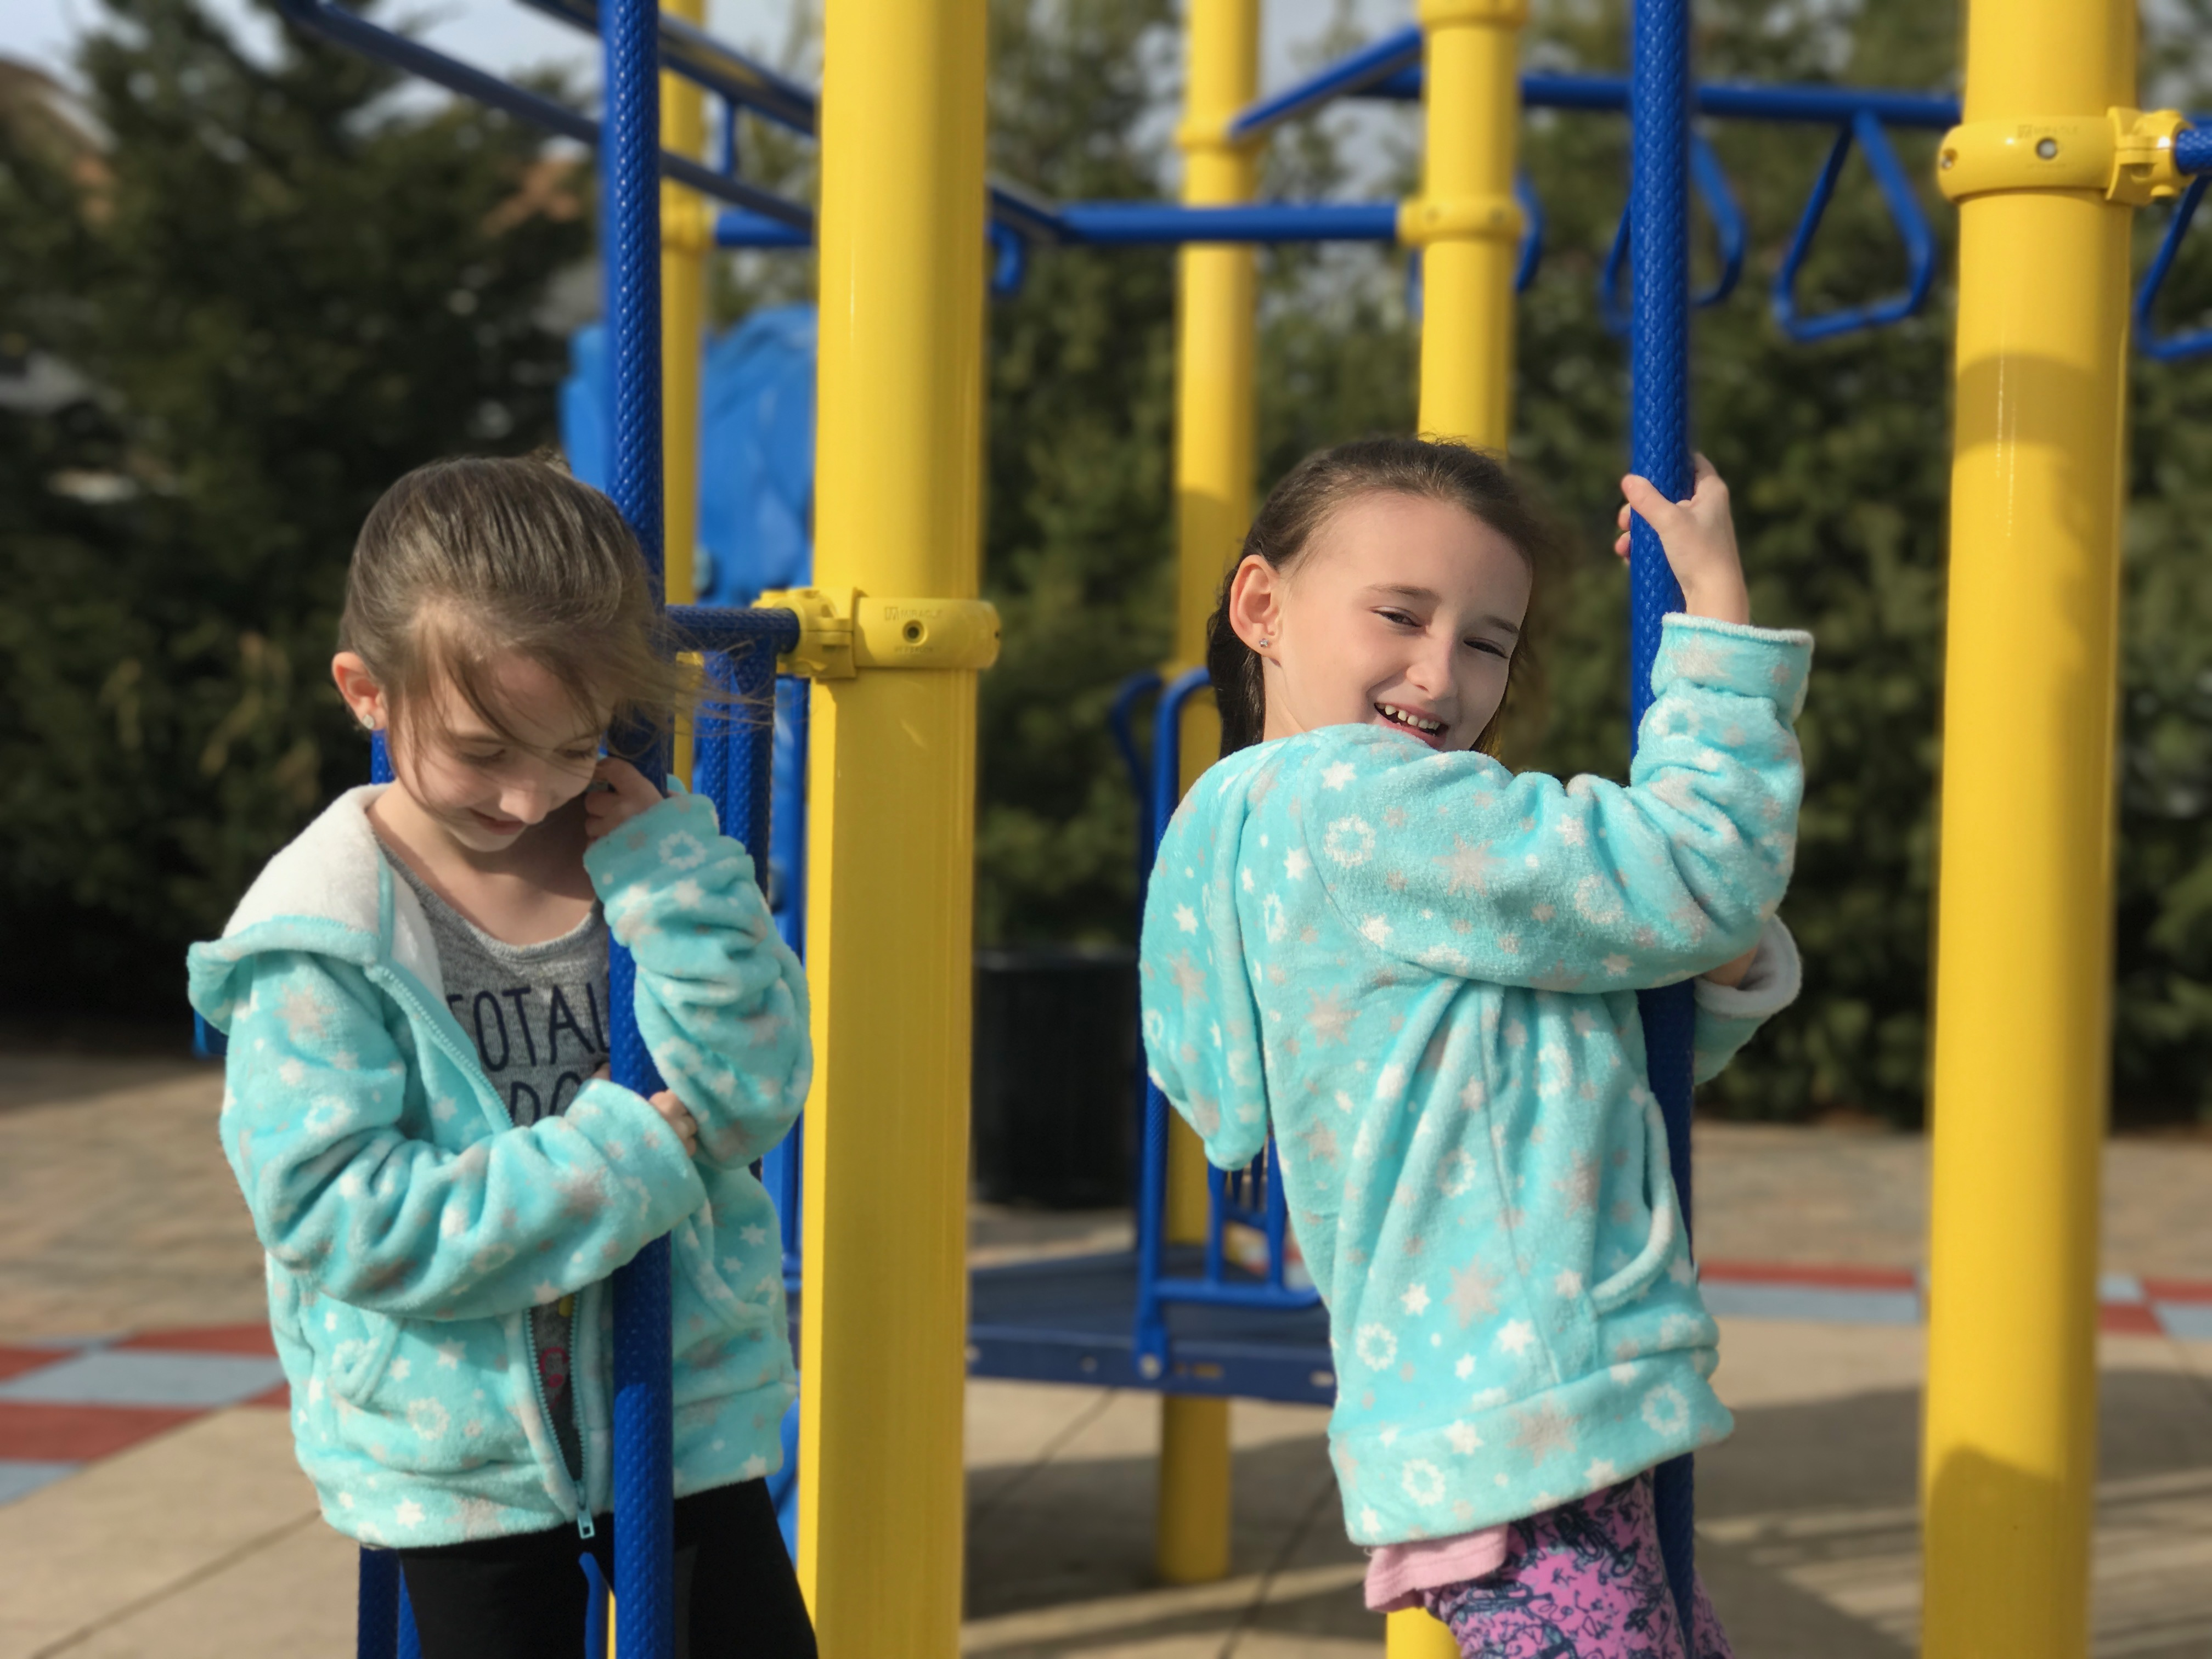 70 Degrees in February at the Playground